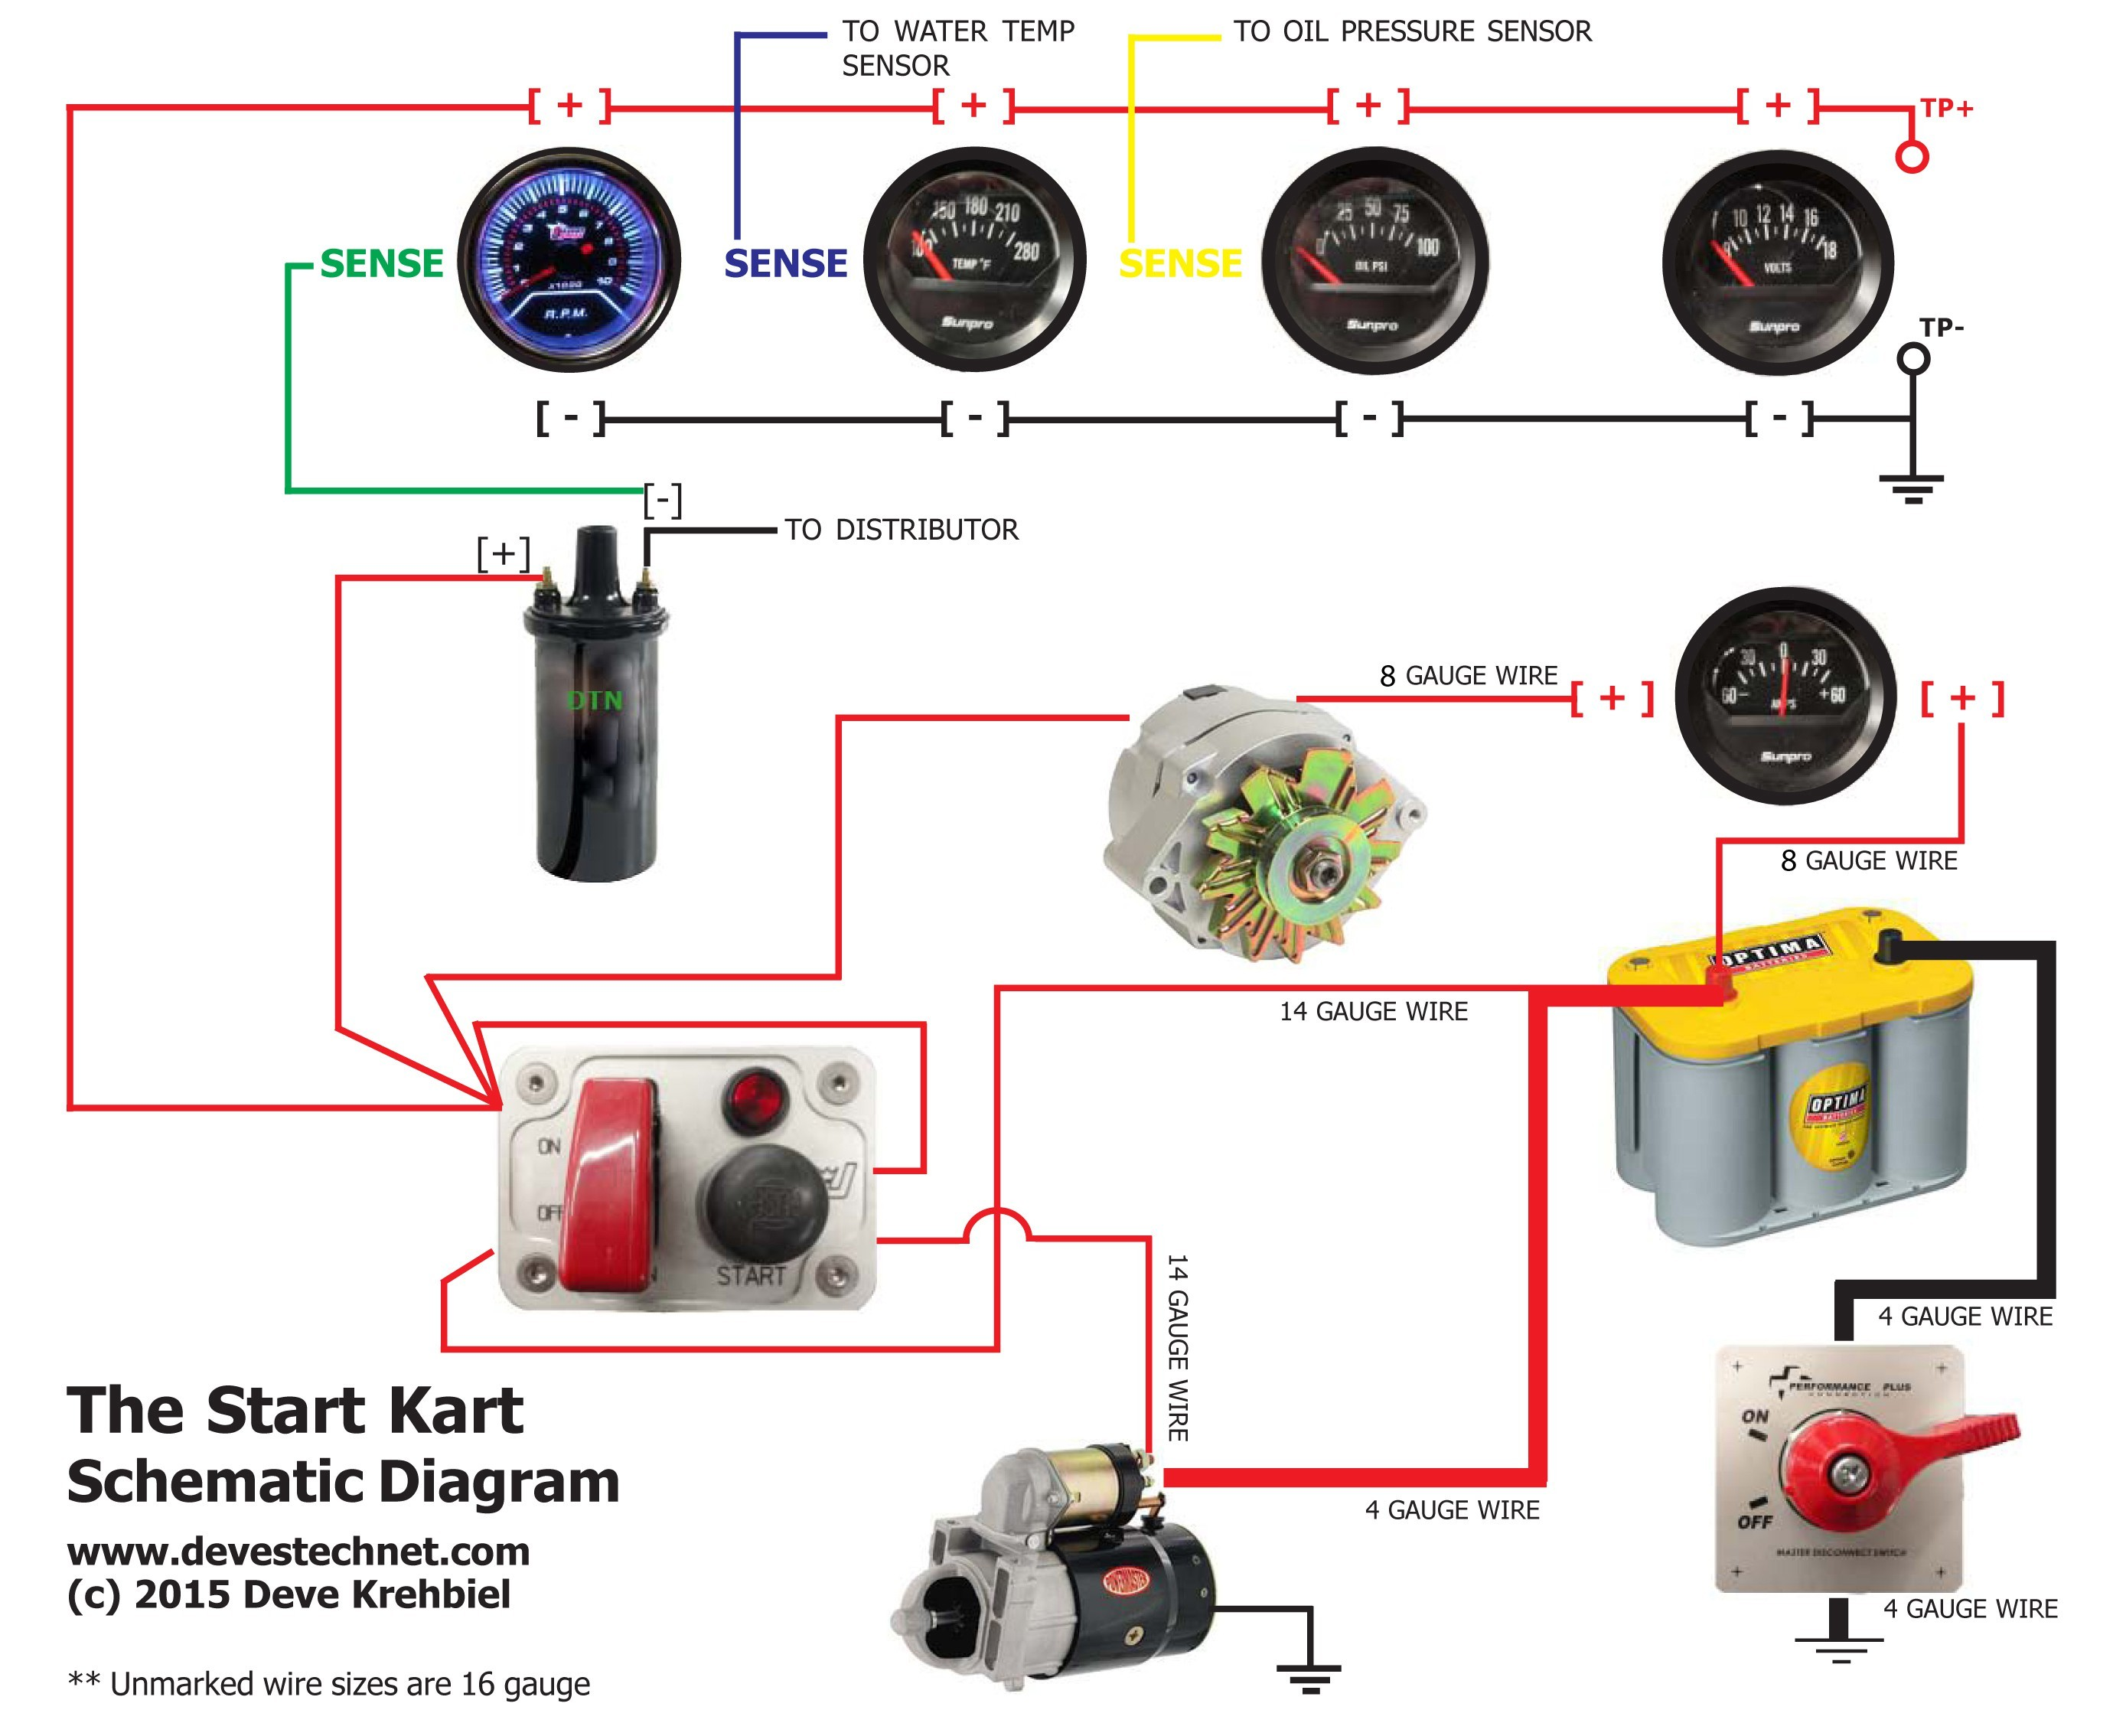 sunpro gauges wiring diagram official site wiring diagramssunpro volt gauge wiring diagram wiring libraryautometer tach wiring diagram new ampere meter connection wiring diagram